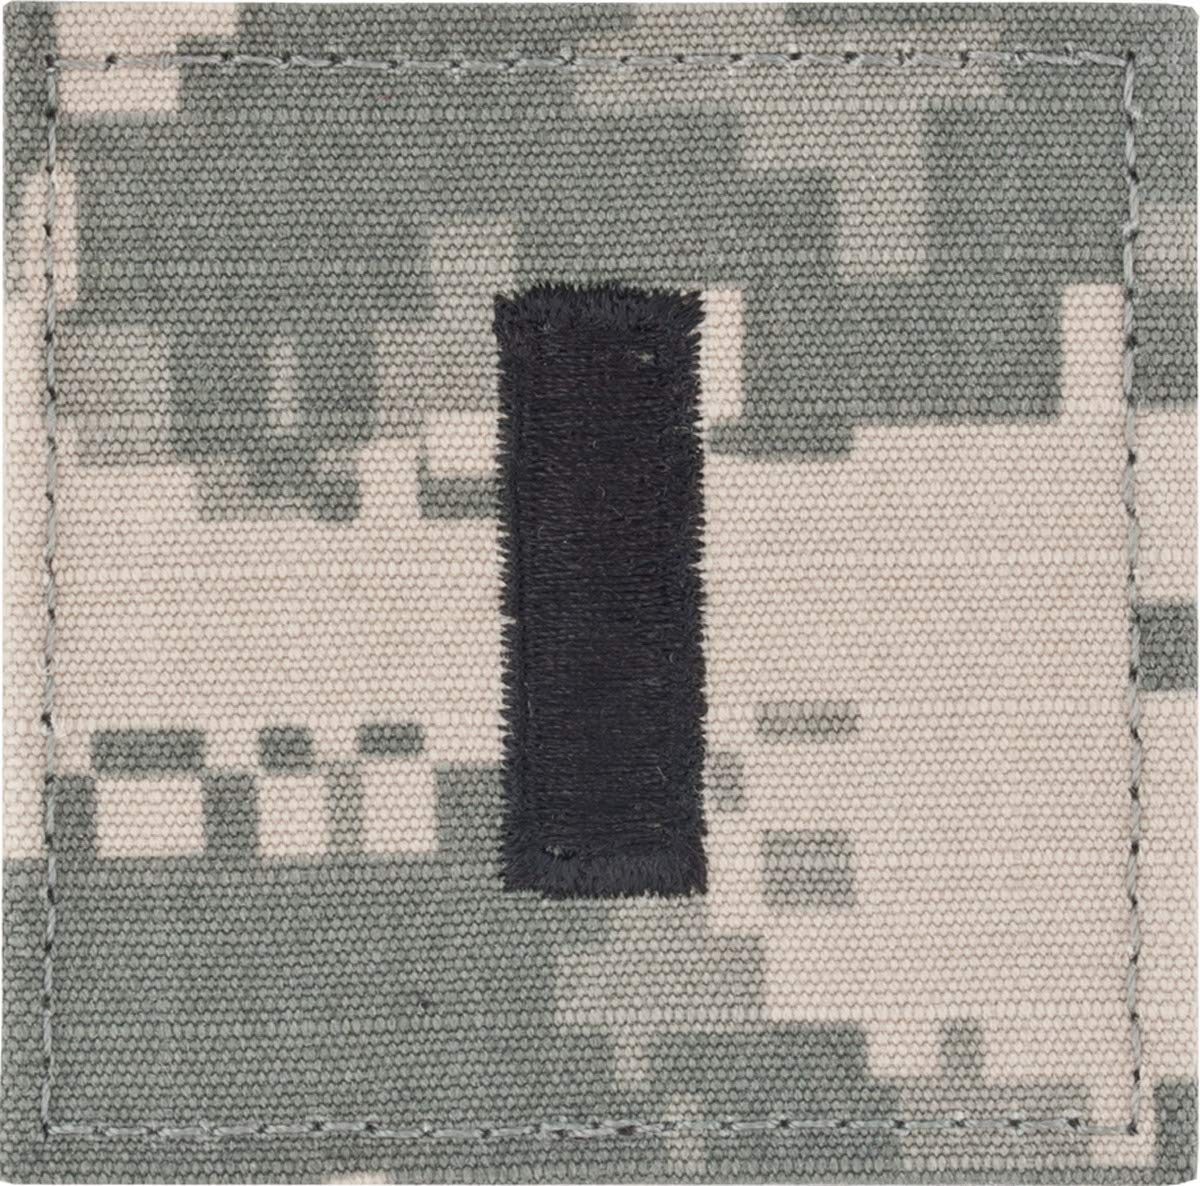 Army Combat Uniform ACU Officer Rank (With Hook Fastener, O-2 First Lieutenant)